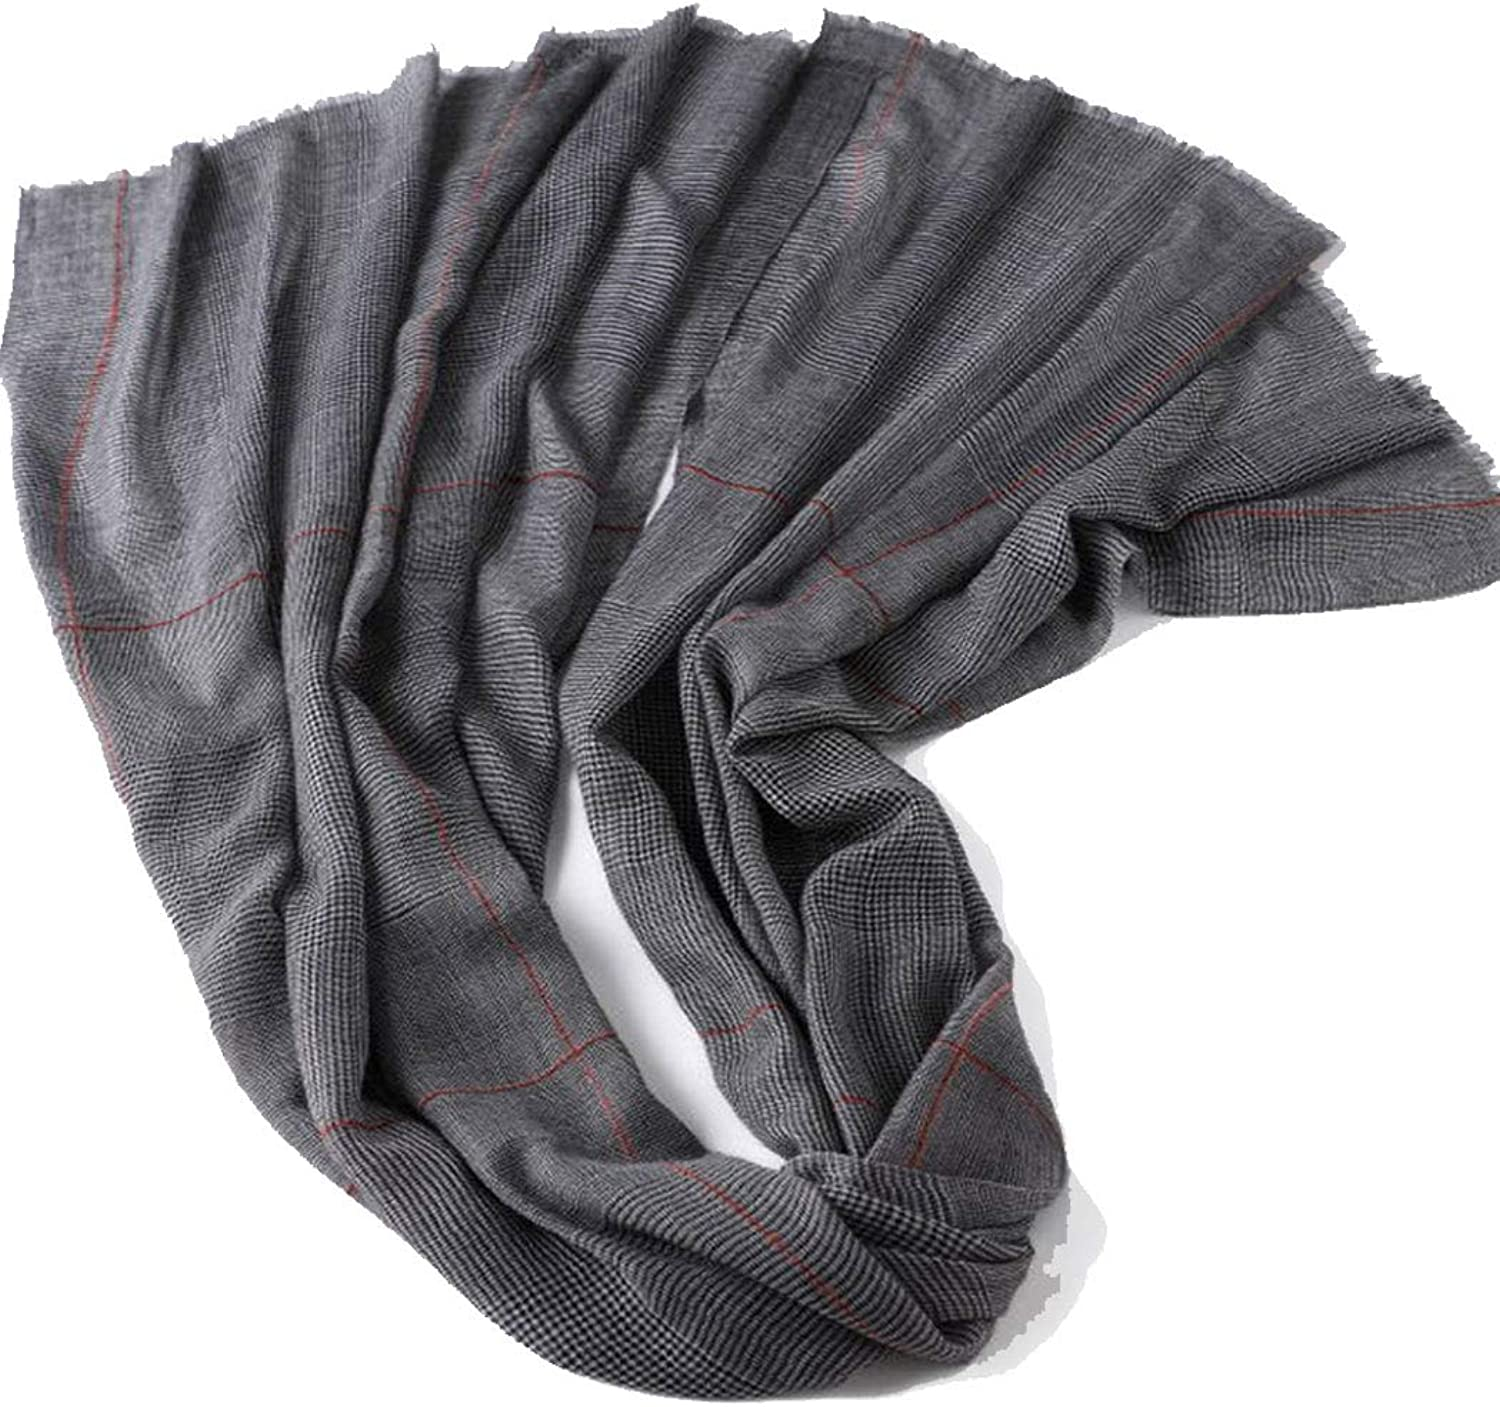 HUIFANG Thin Section Cashmere Scarf Worsted YarnDyed Shawl Women's New European and American Autumn and Winter New Warm 90  200CM A (color   4, Size   90  200CM)